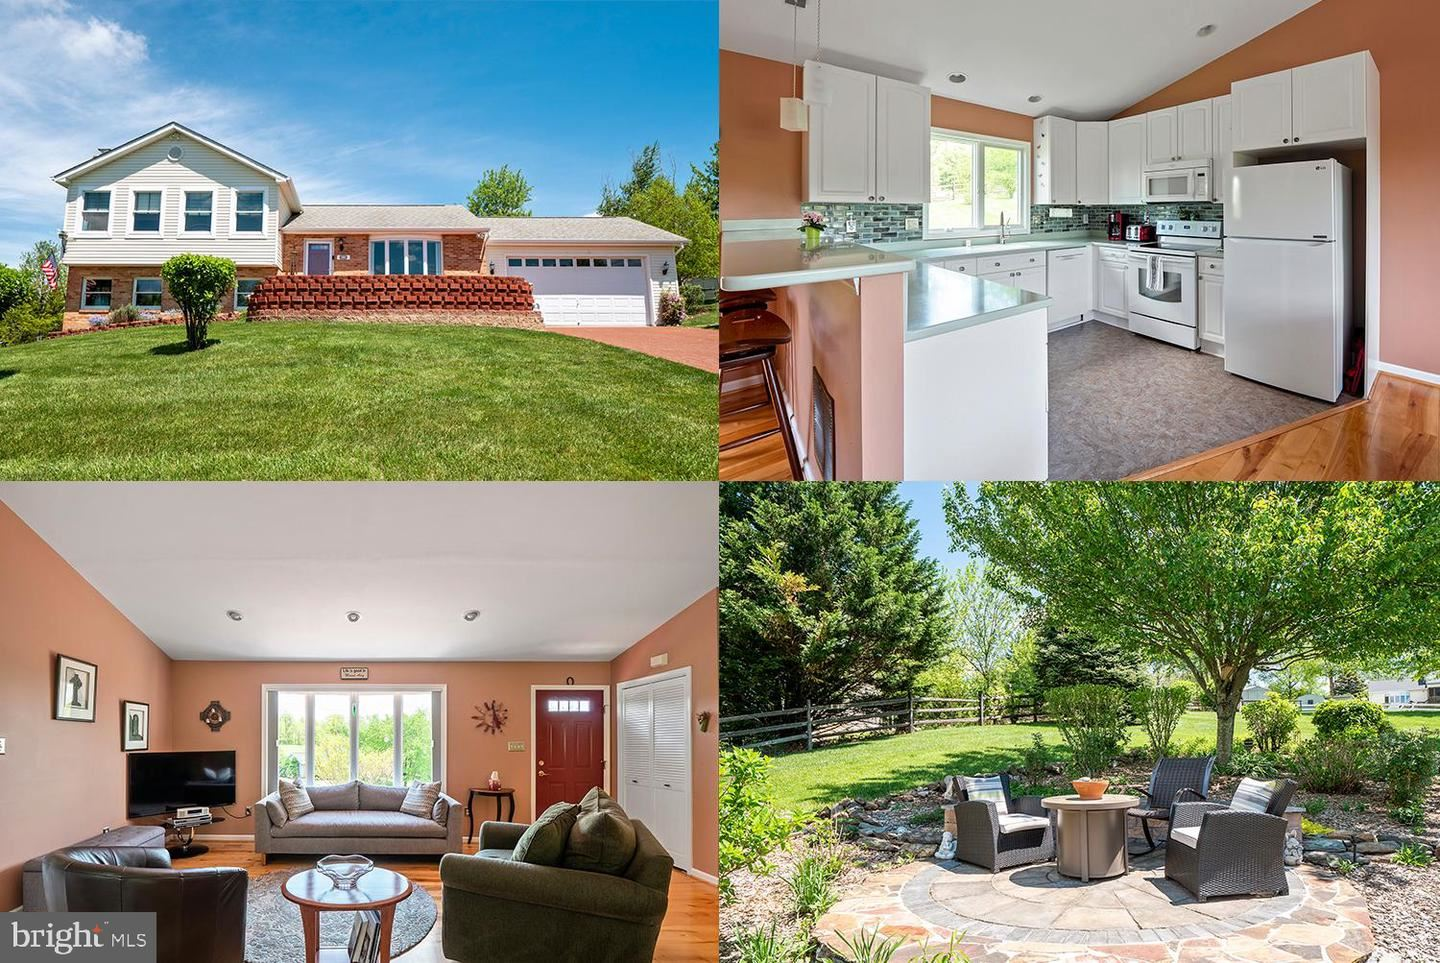 4210 CANDICE DR, Mount Airy, MD 21771 - MLS#: MDCR204186